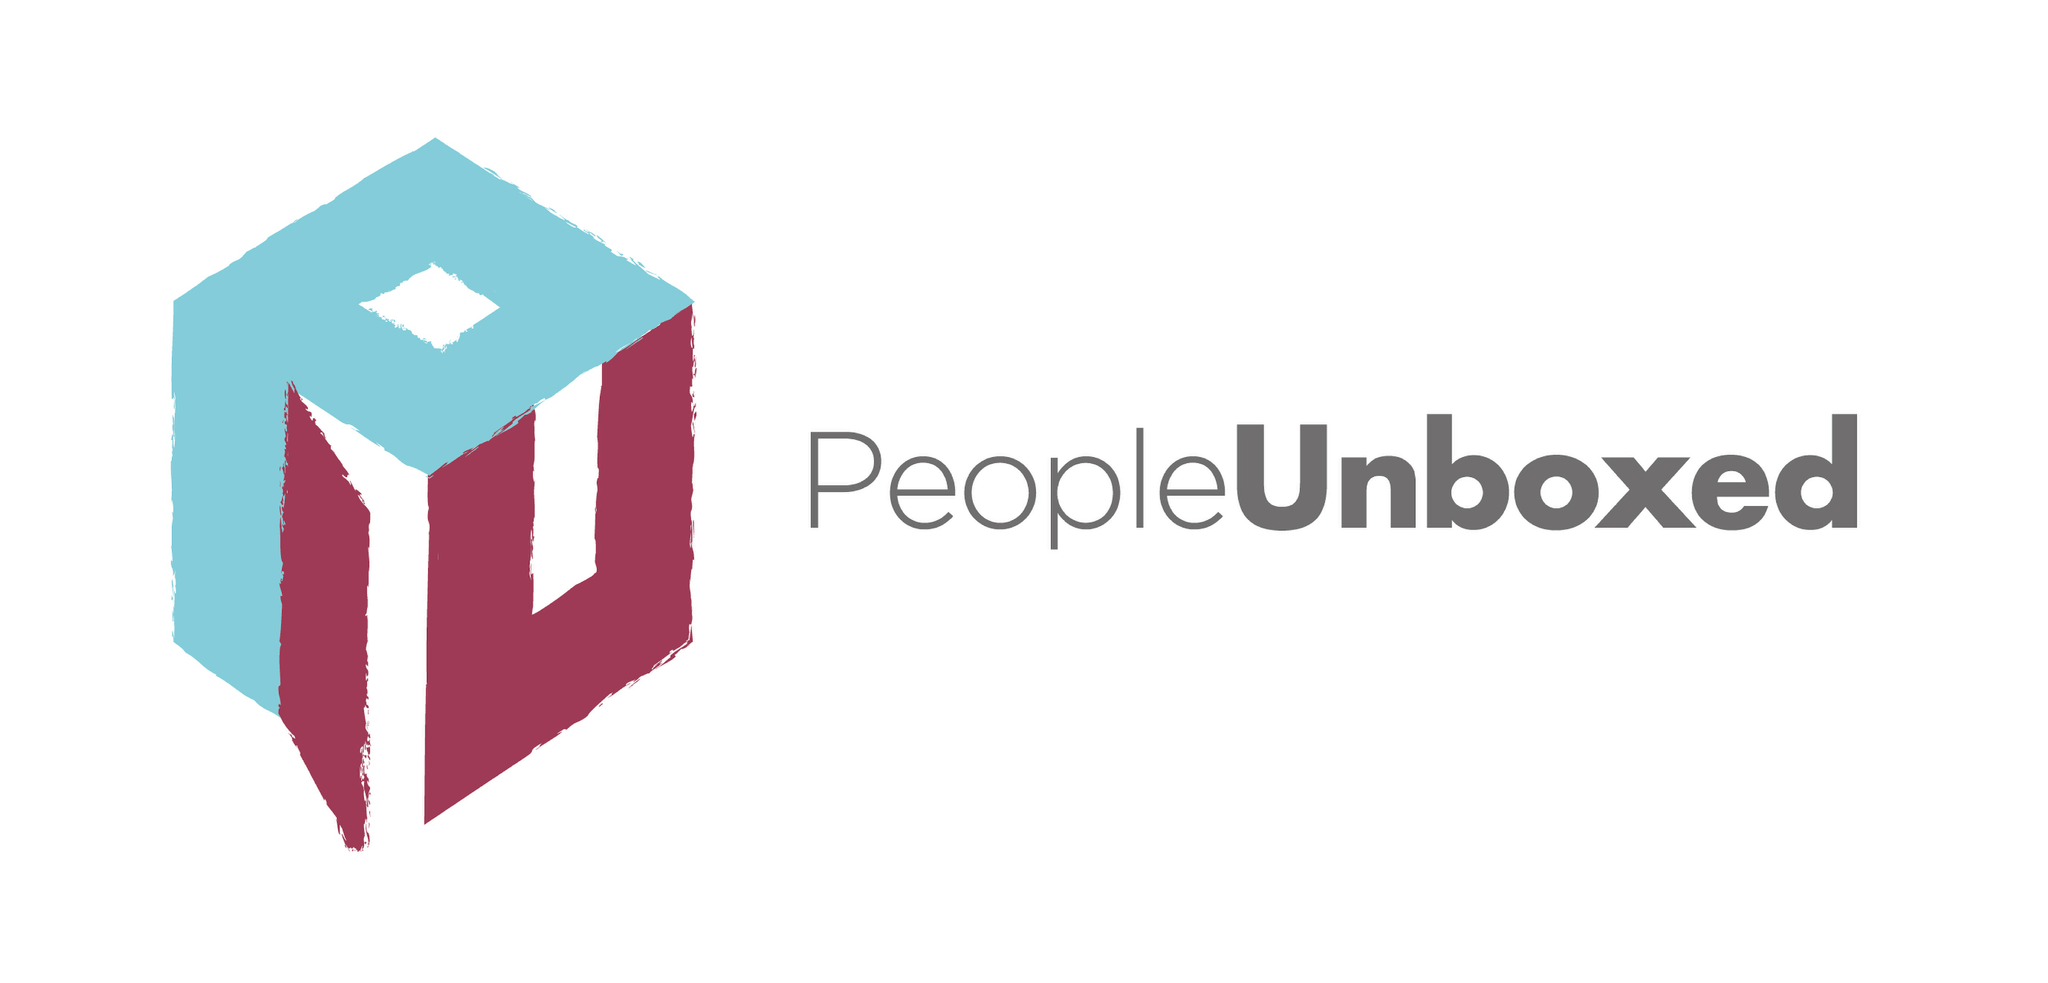 PeopleUnboxed Ltd